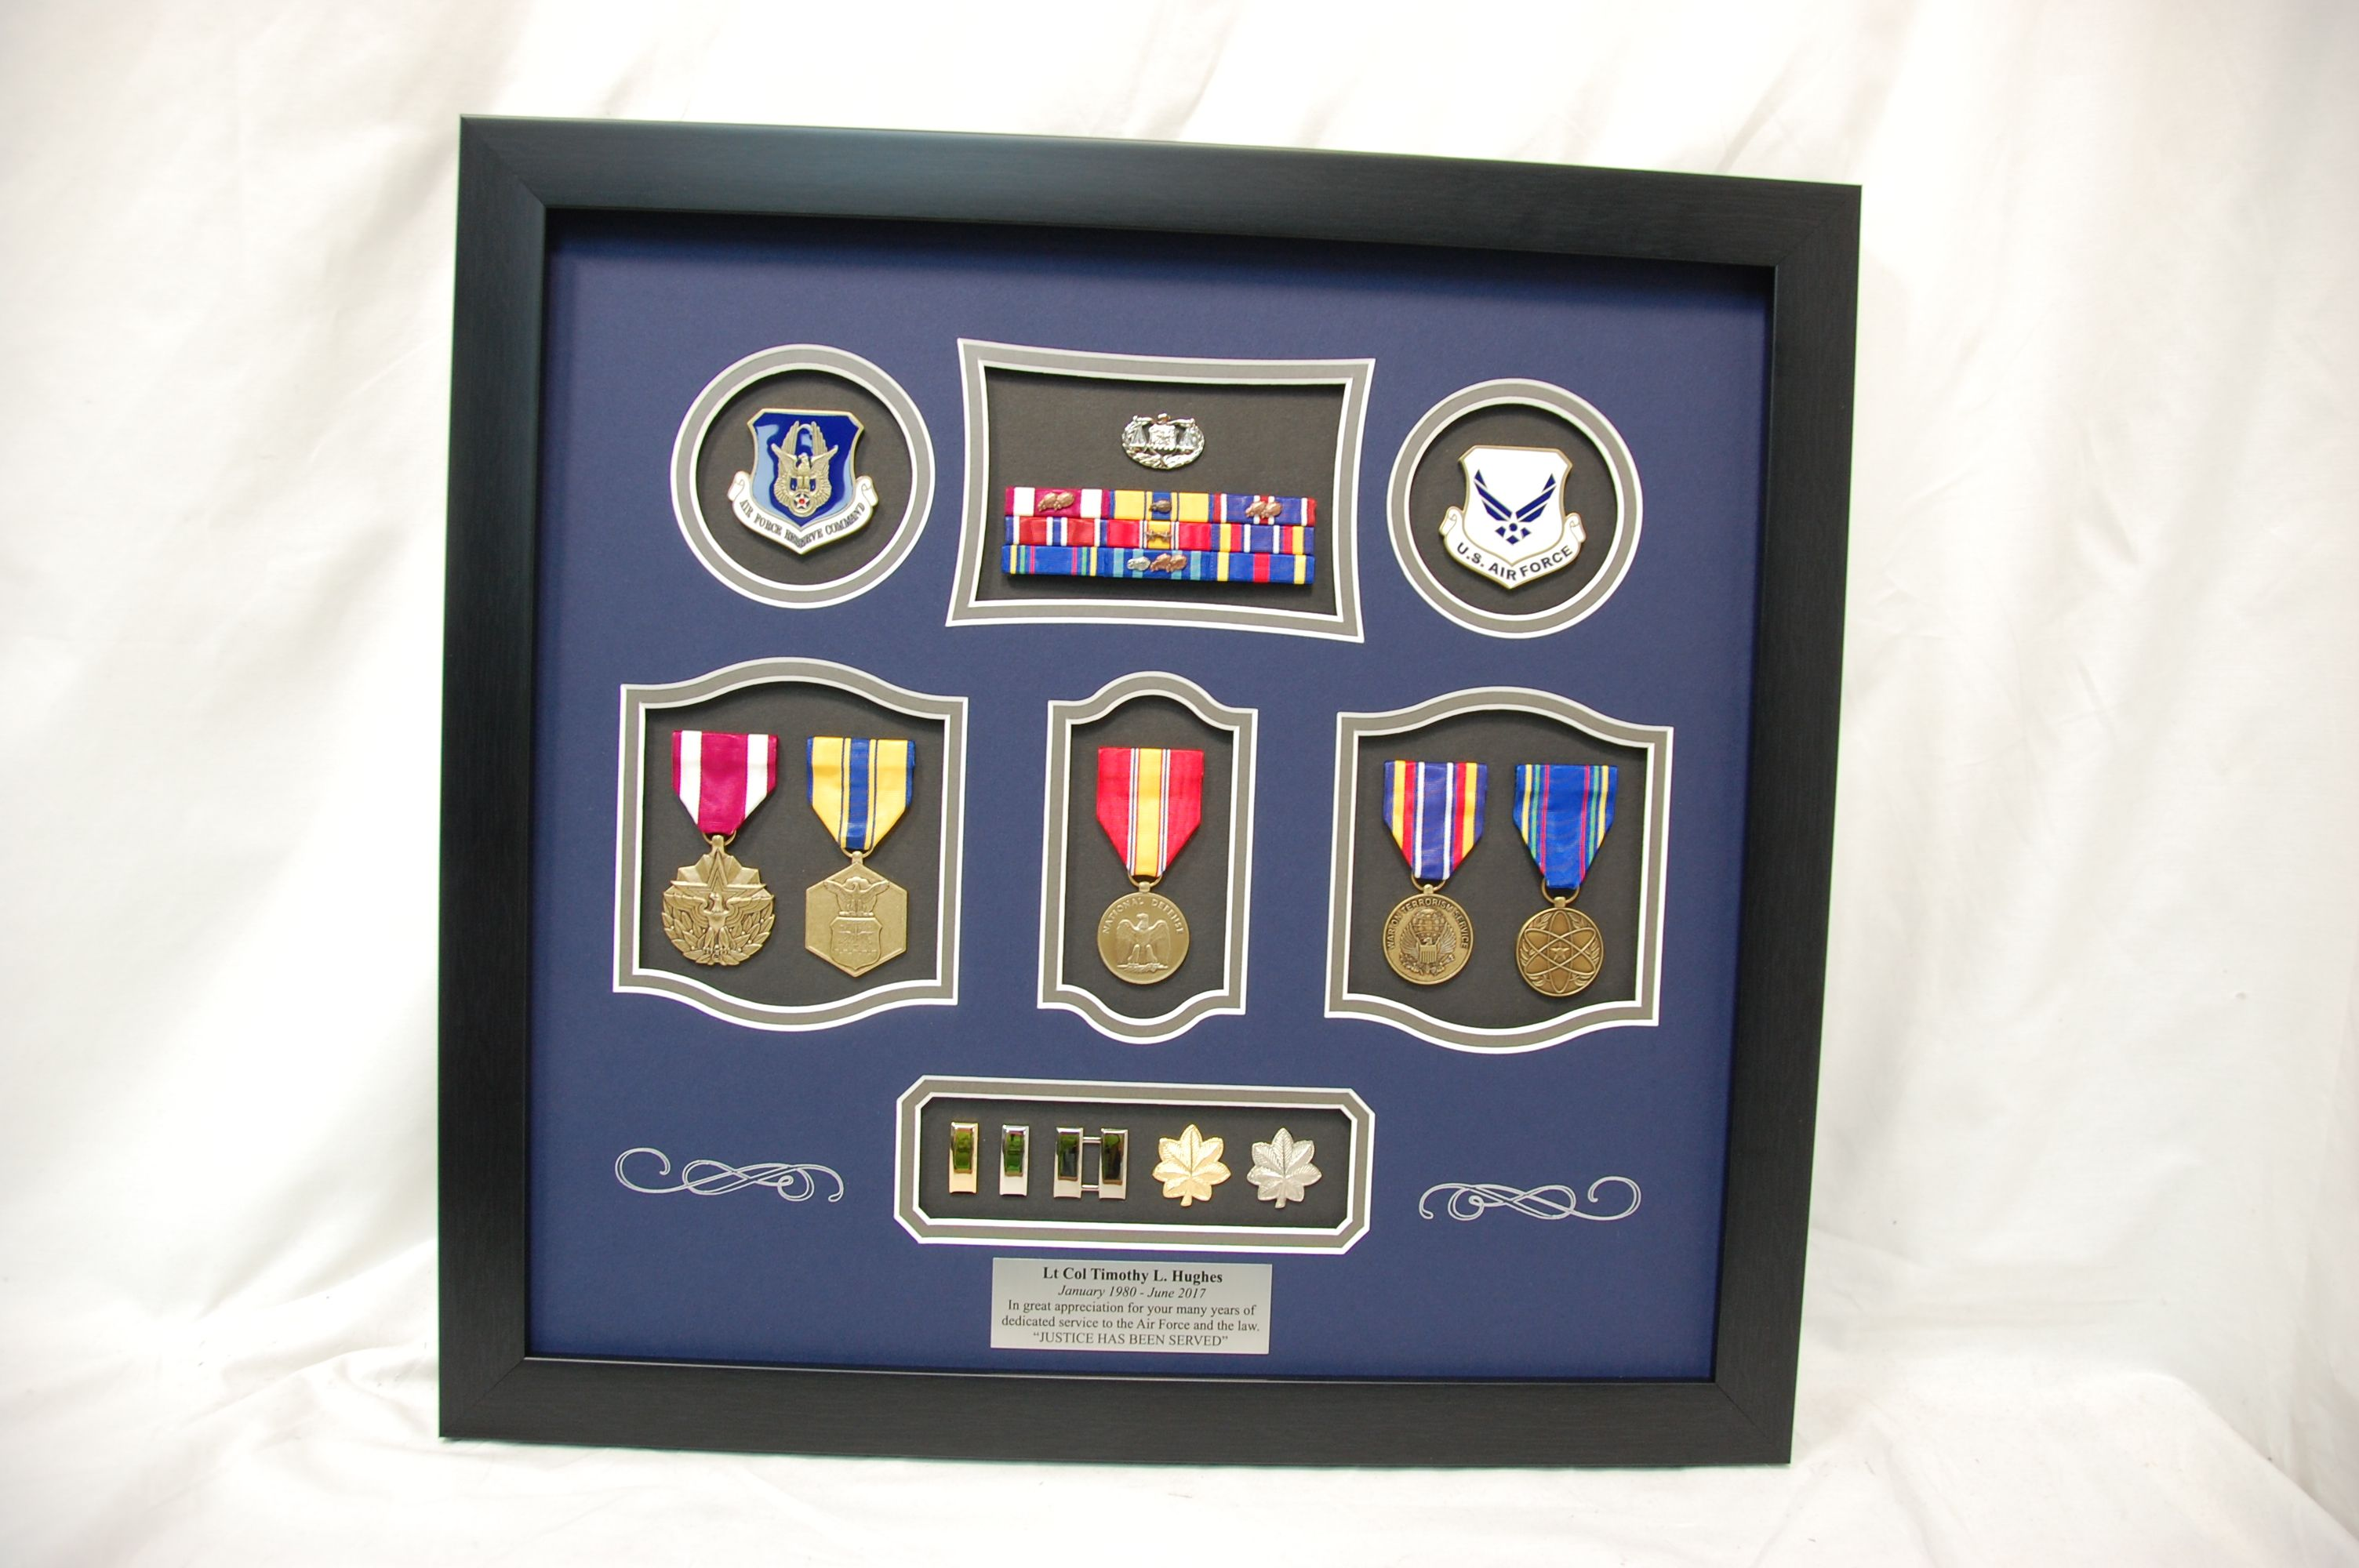 US Air Force Frame Display with challenge coins, medals